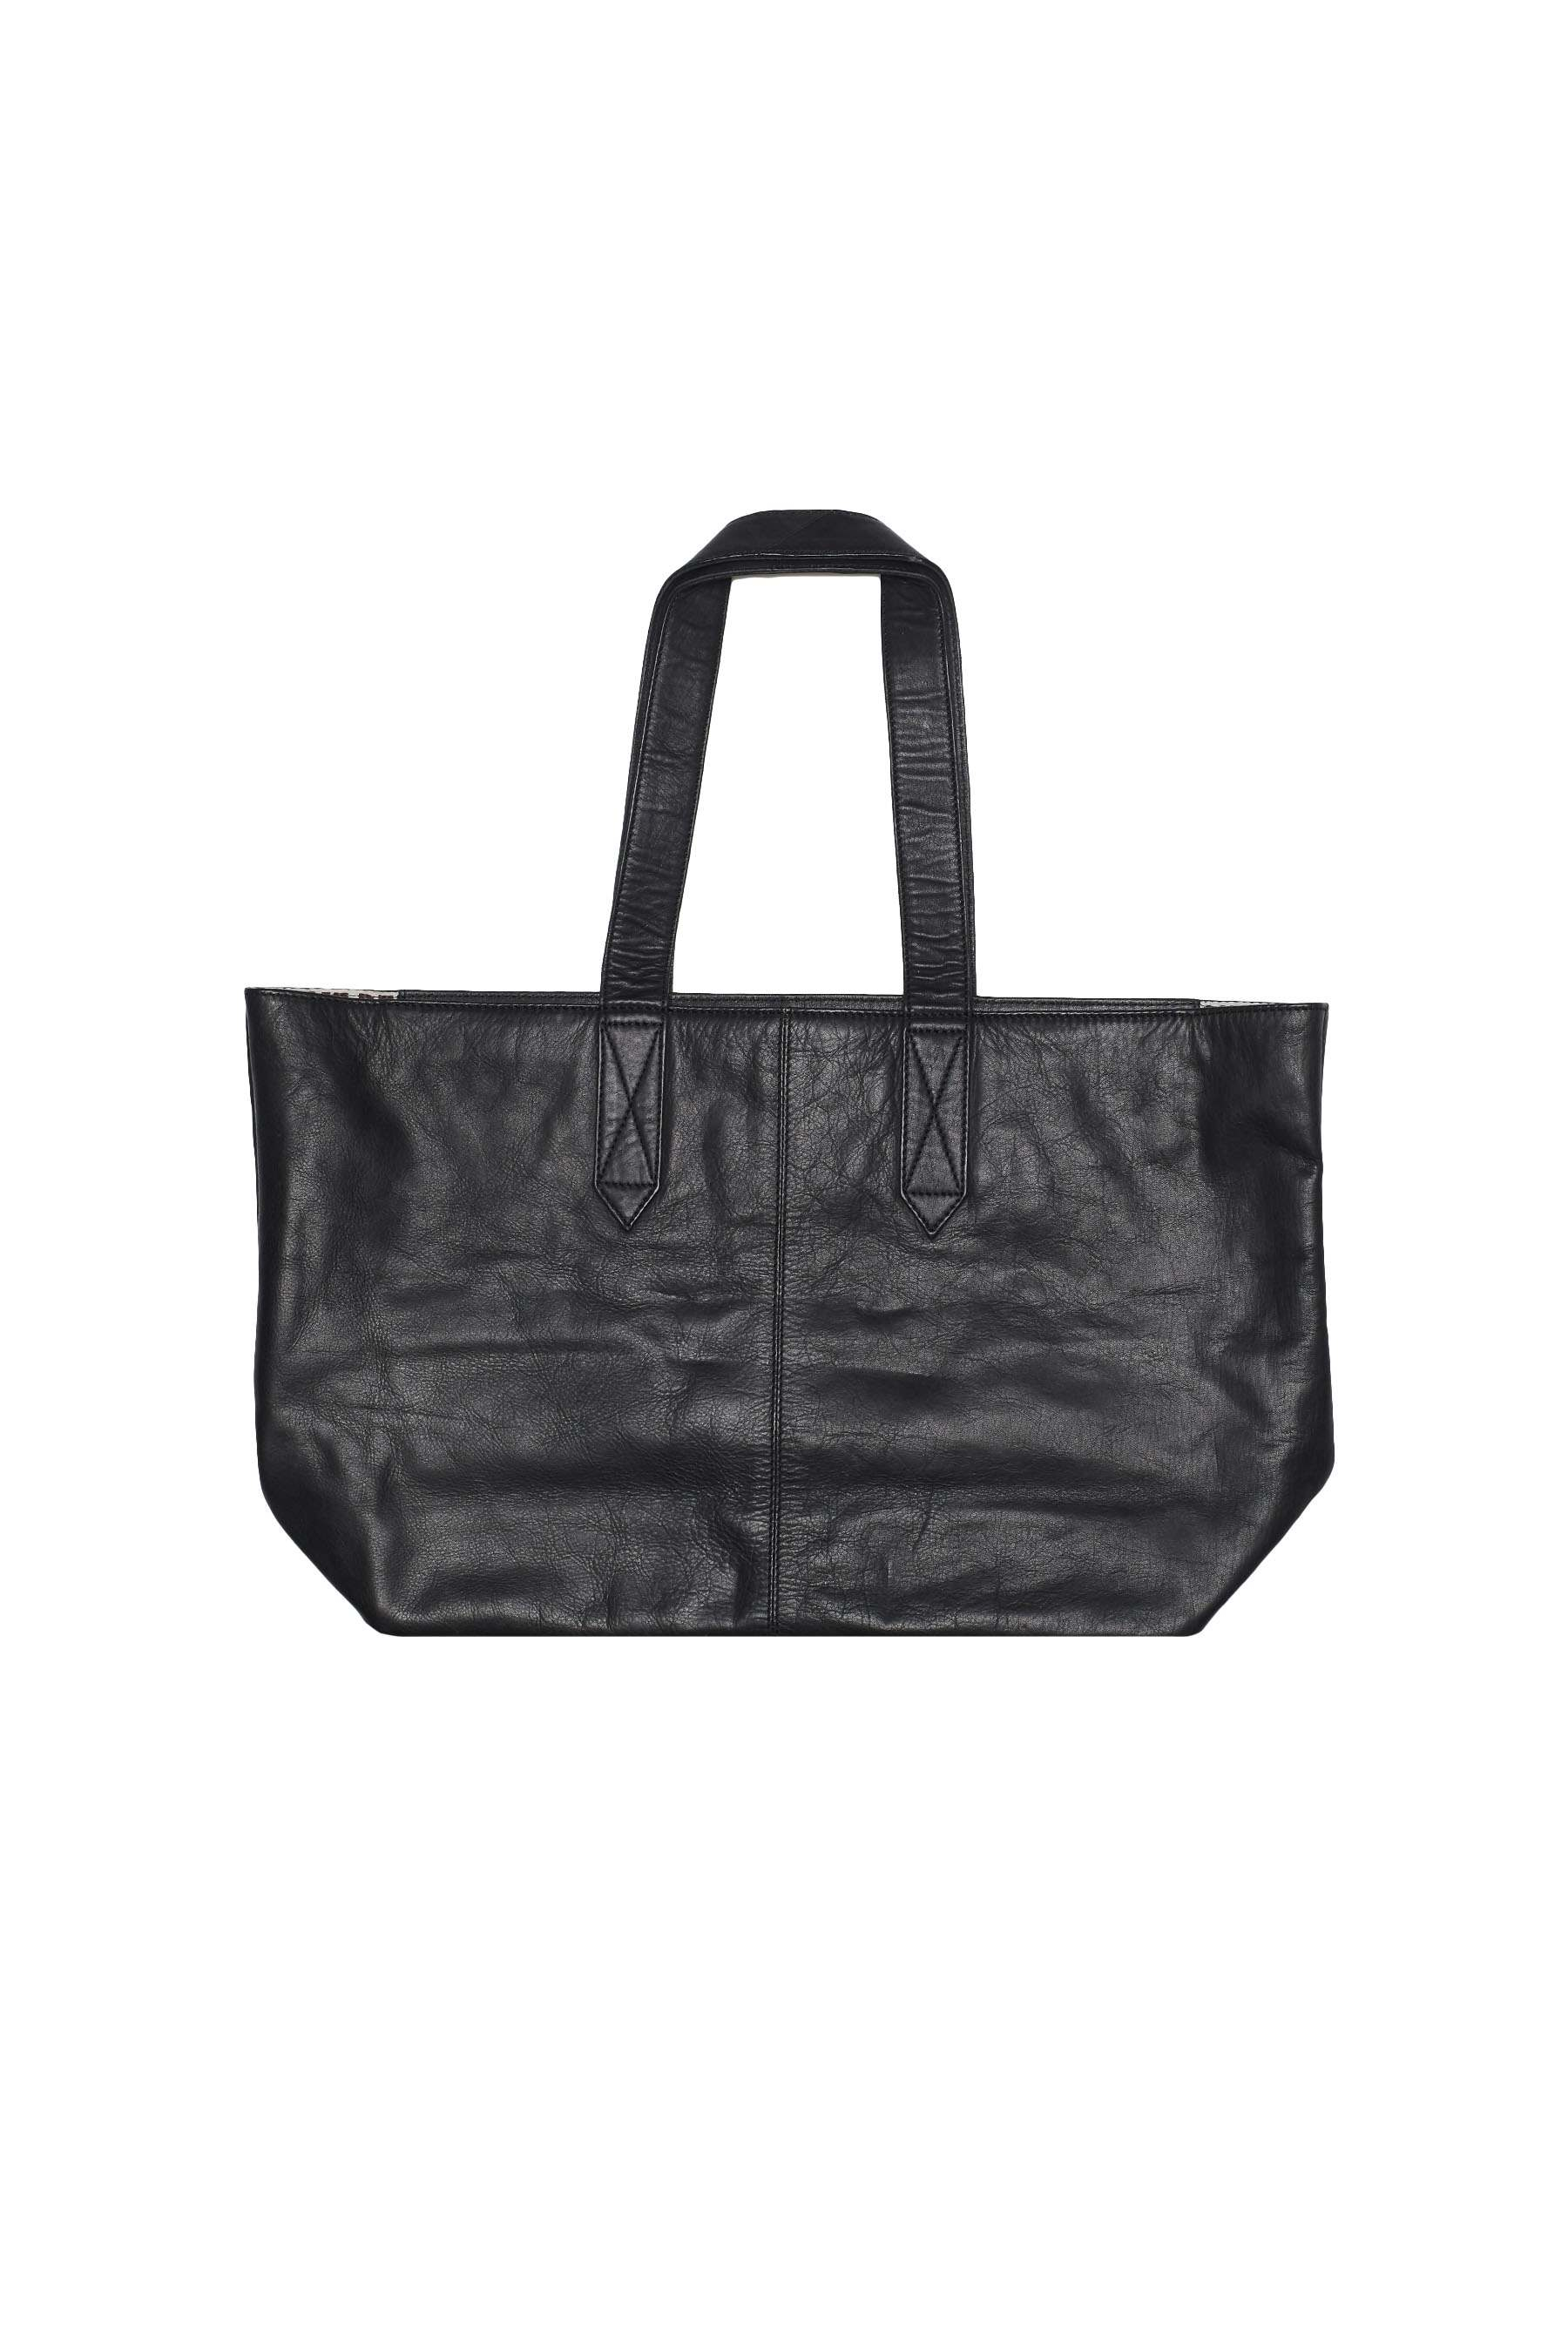 BO1041 - SHOPPING BAG 2